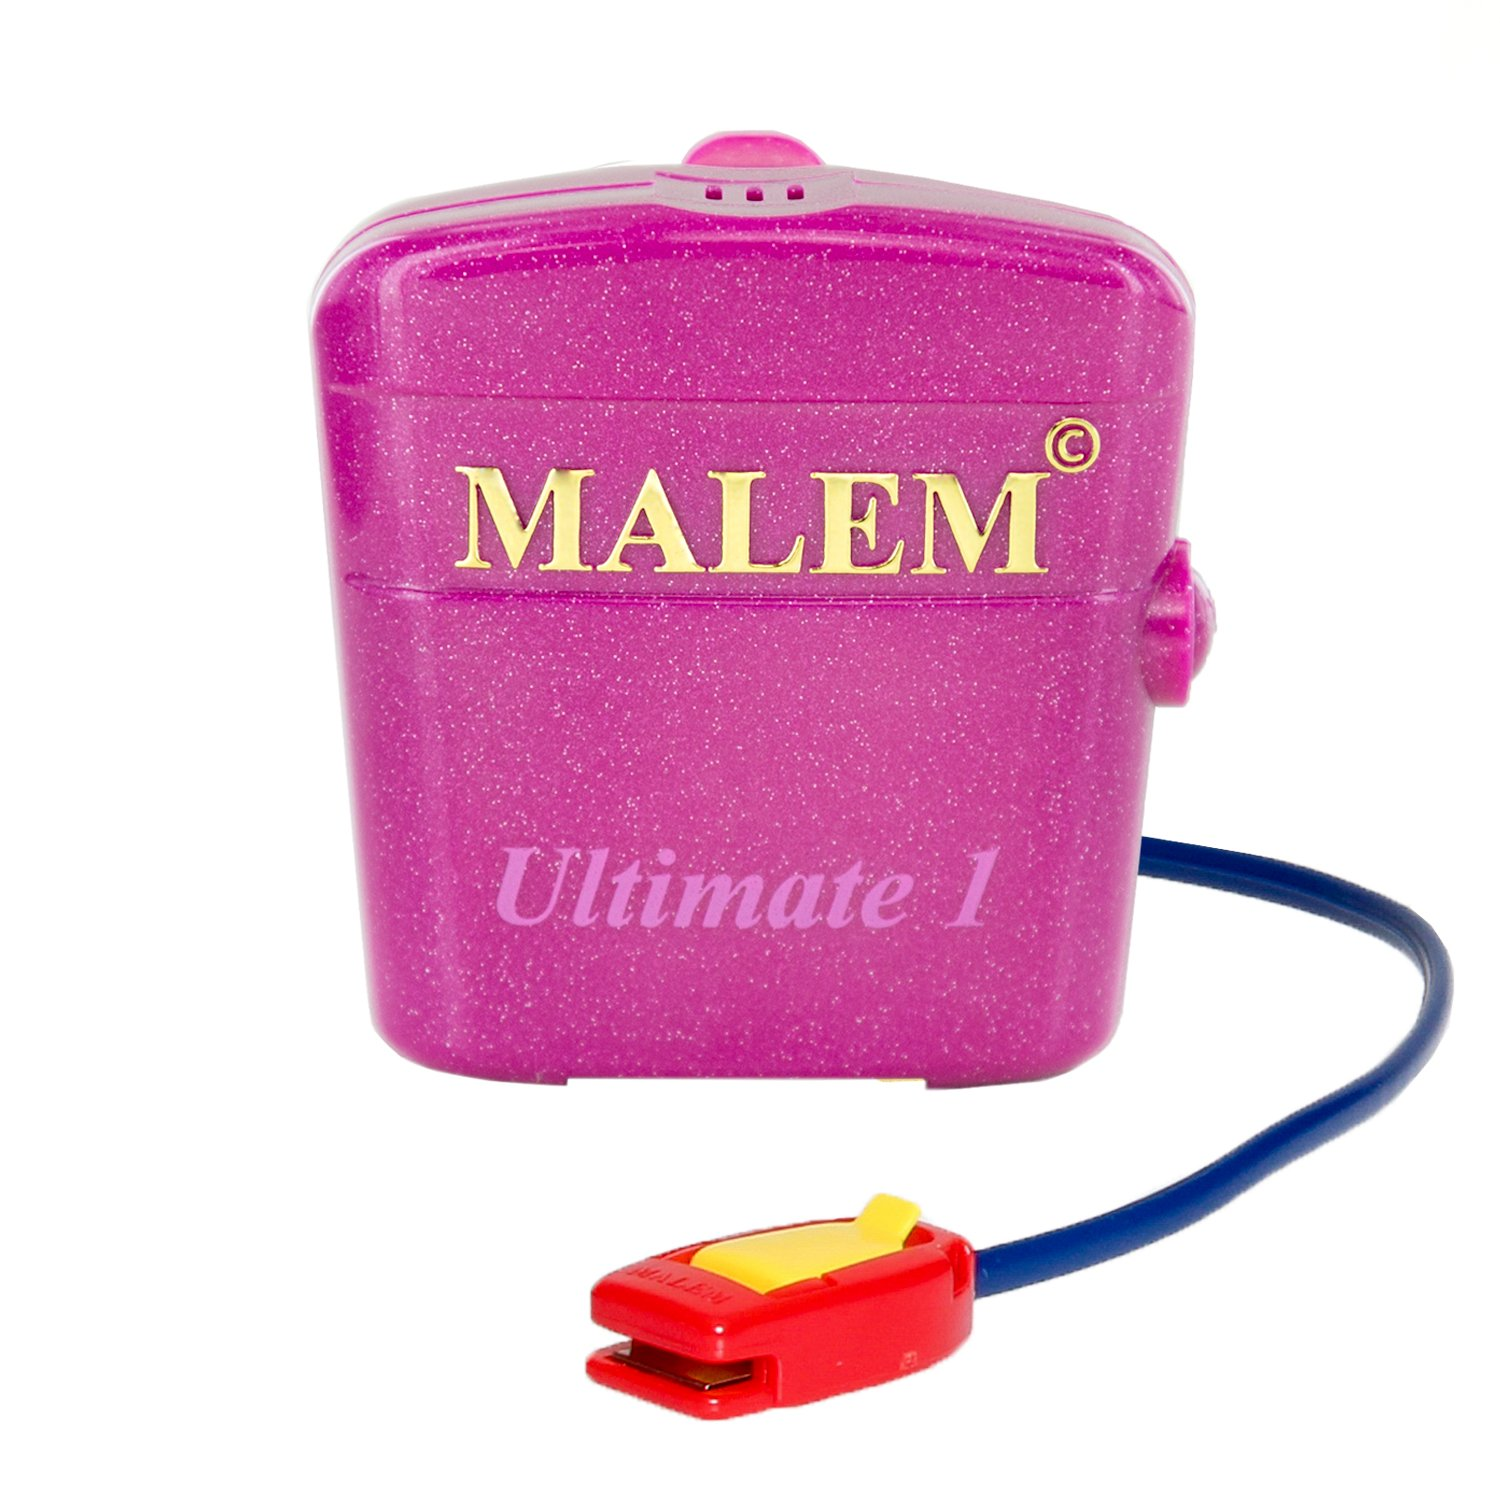 Malem Ultimate PRO Pink Bedwetting Alarm for Girls & Boys with Loud Sound and Strong Vibration to Stop Bed Wetting by Malem